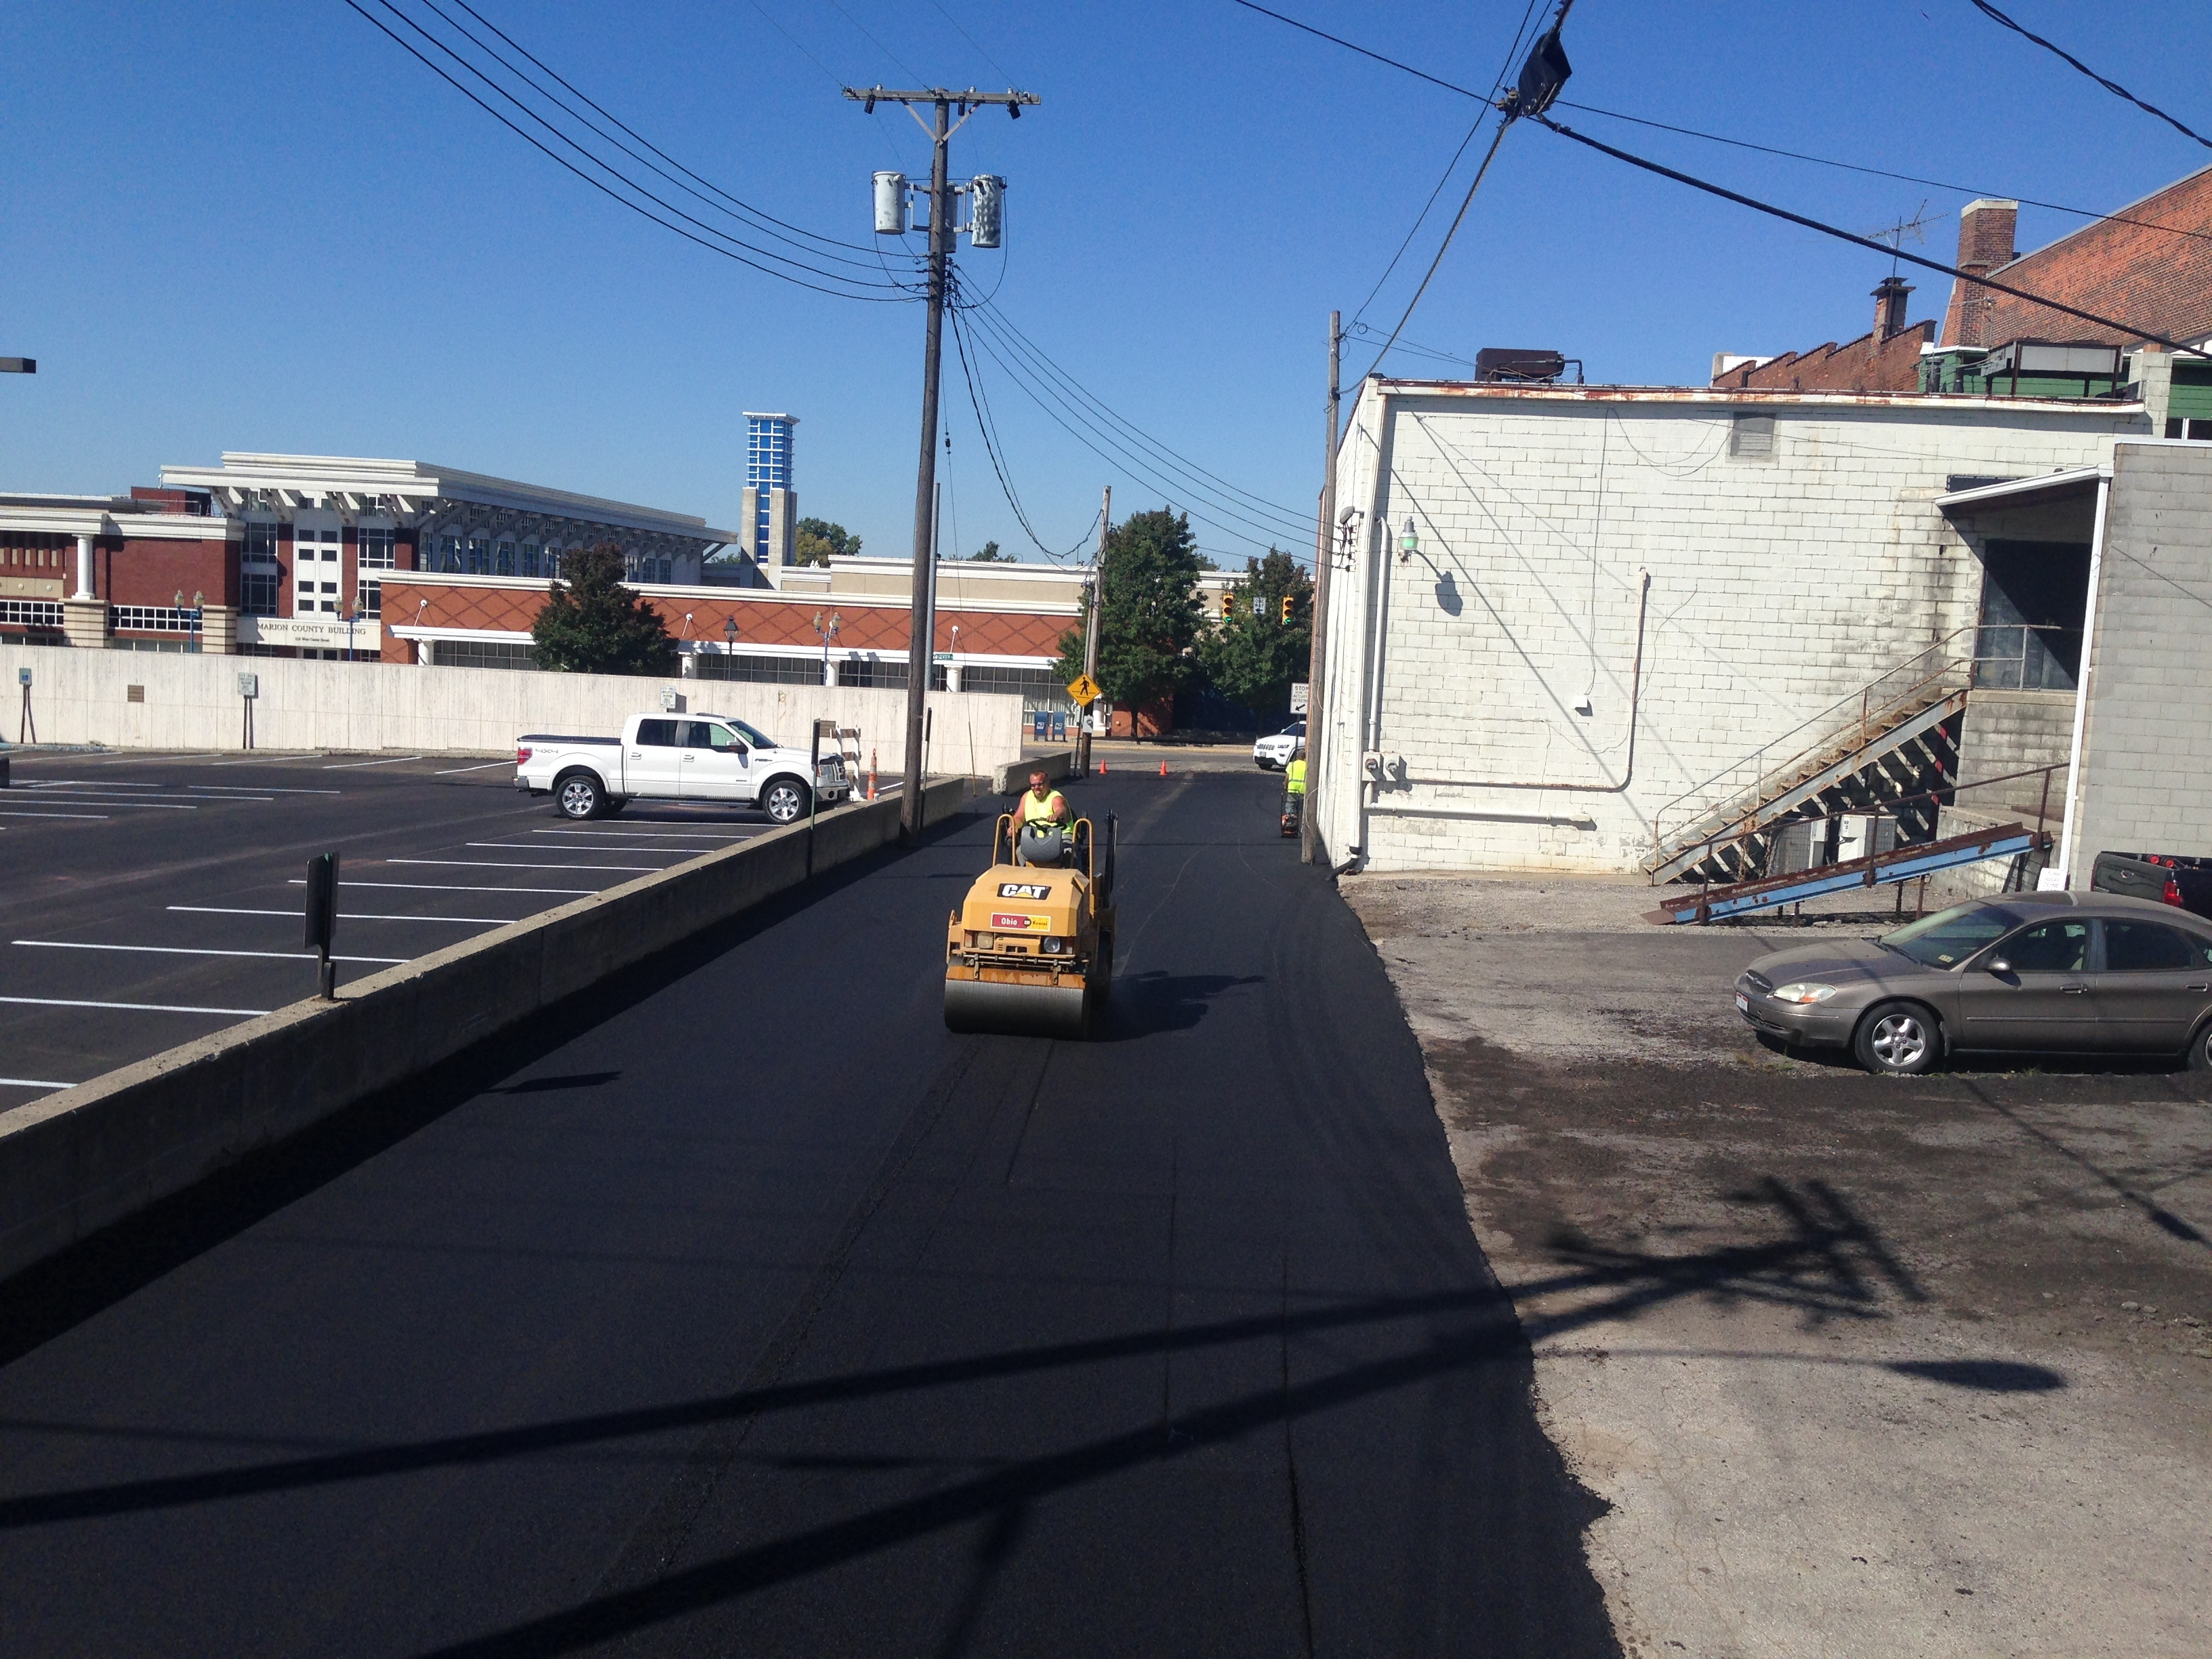 Park Enterprise Construction asphalt parking lot